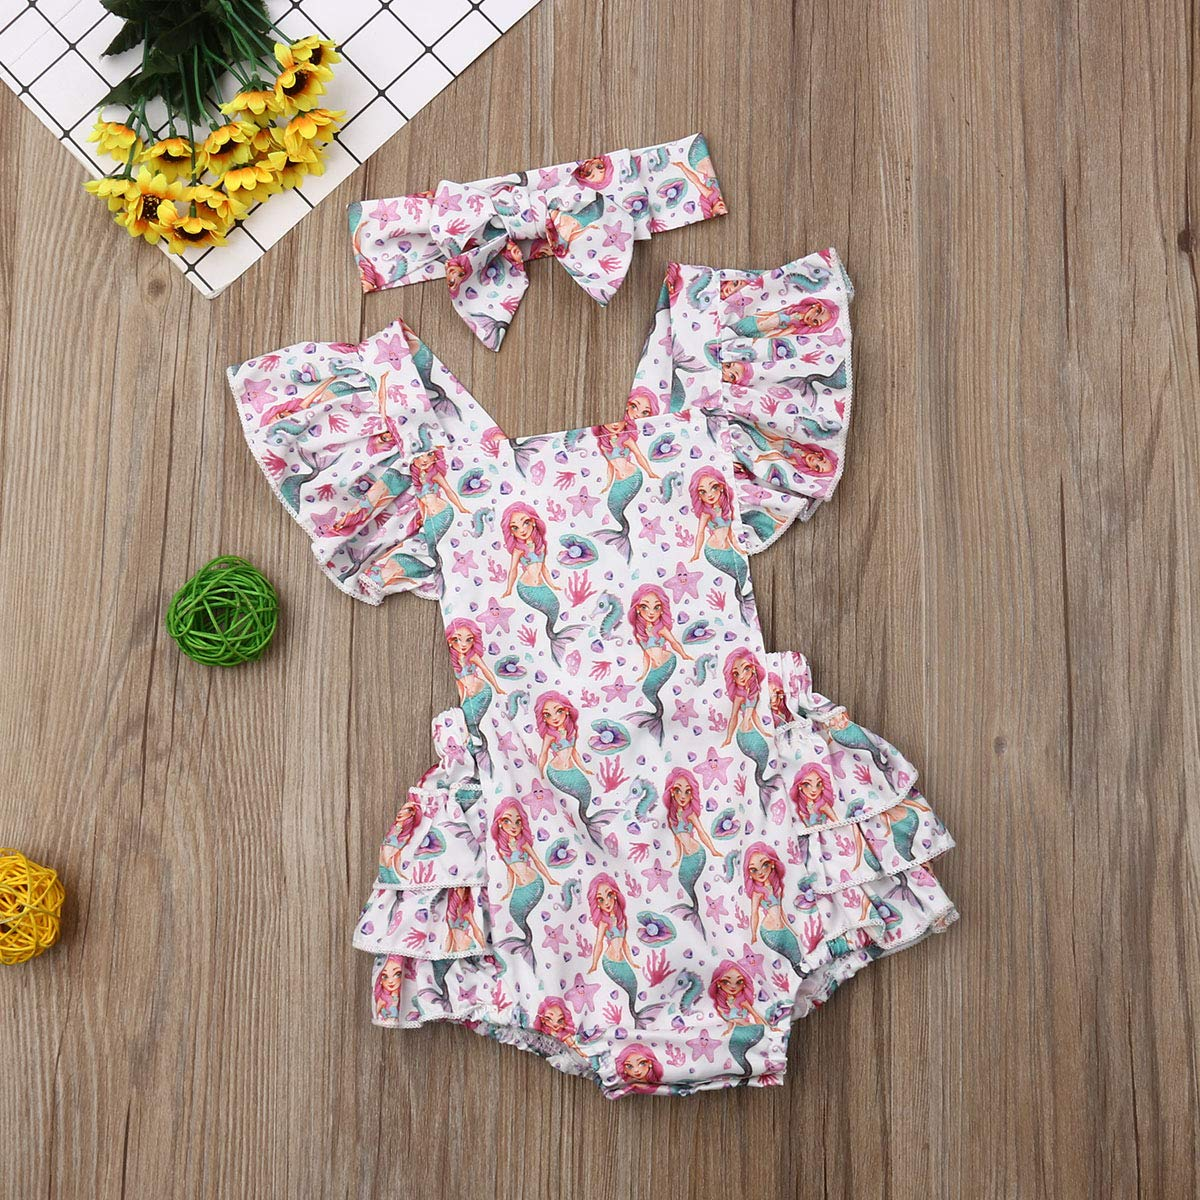 Baby Girls Mermaid Rompers Strap Ruffle Sleeves Backless Summer Party Beach Wear Bodysuit Outfits Clothes with Headband